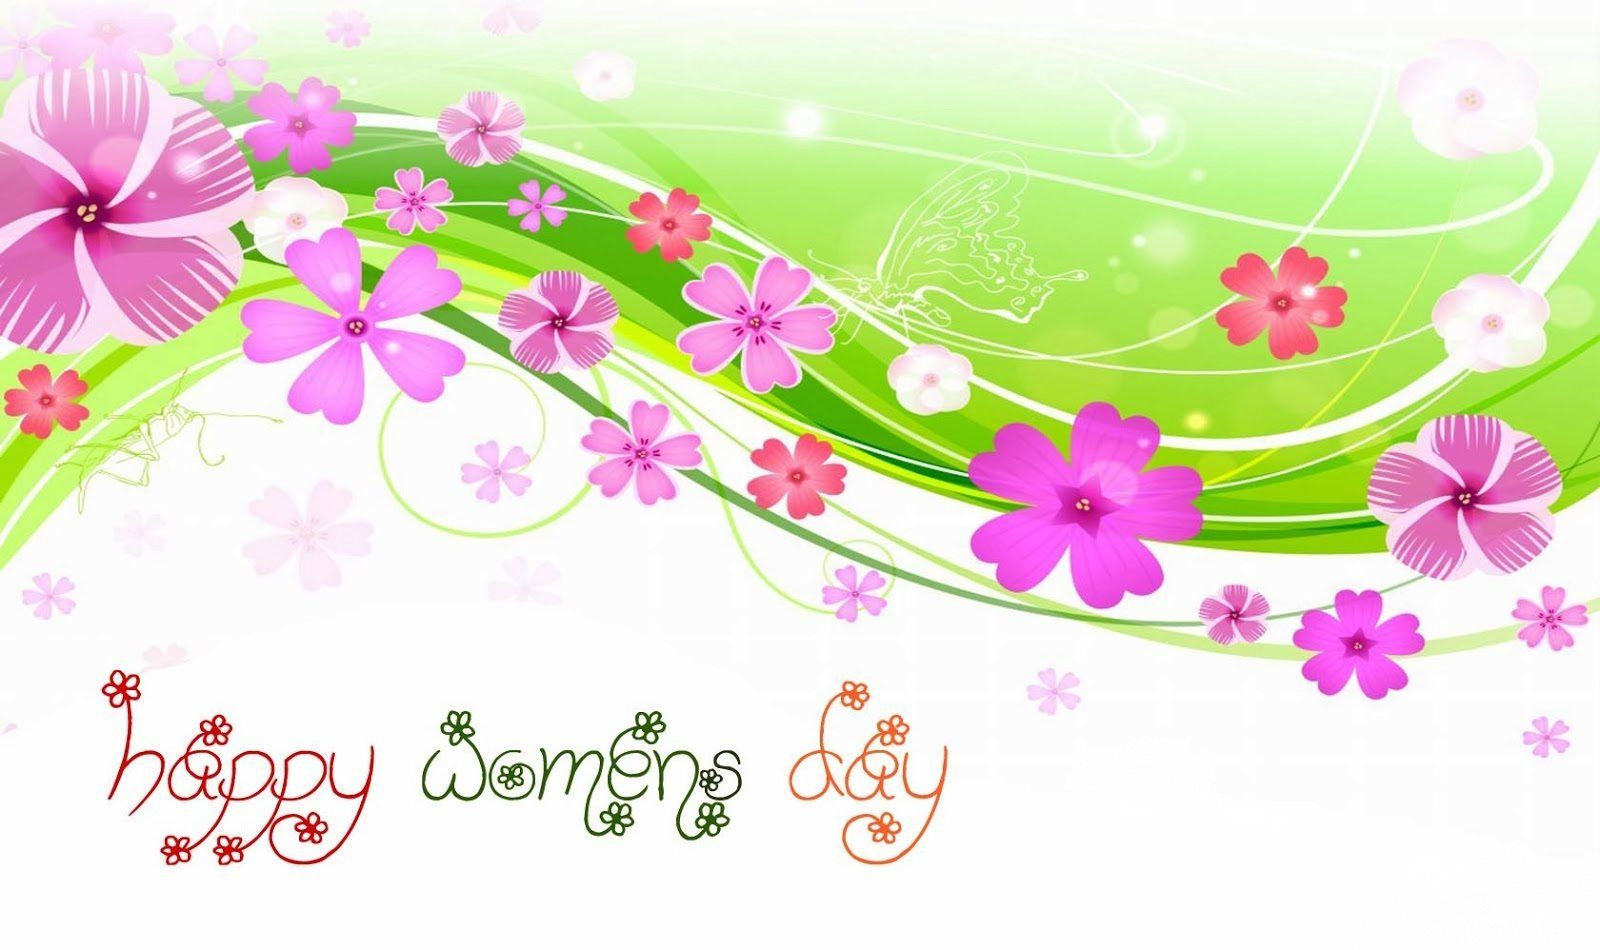 Happy womens day images hd womens day pinterest inspiring happy womens day images hd kristyandbryce Gallery